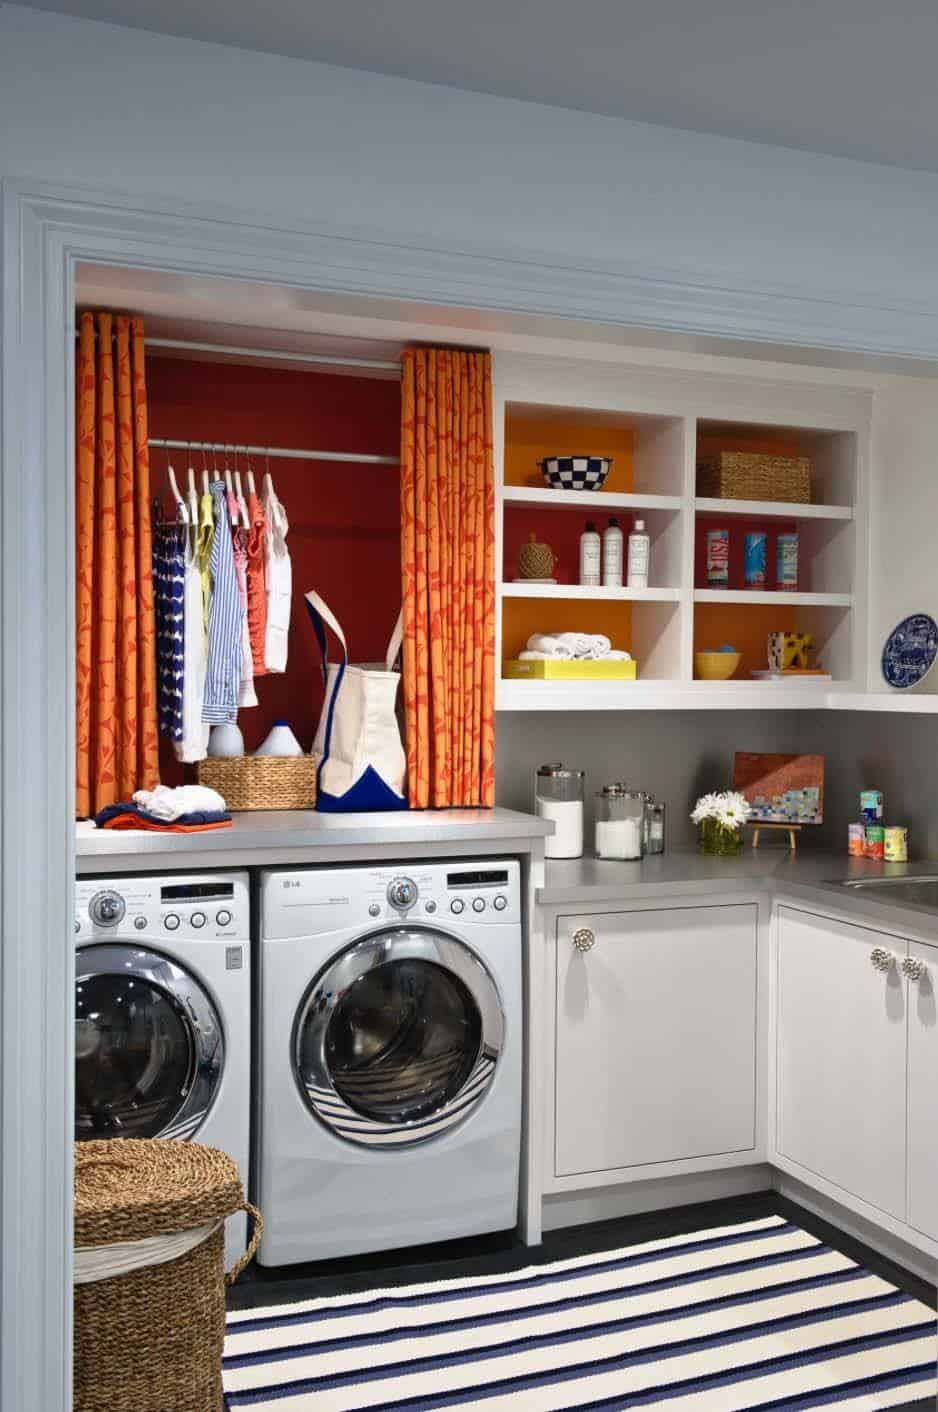 Laundry Room Organization Ideas-02-1 Kindesign